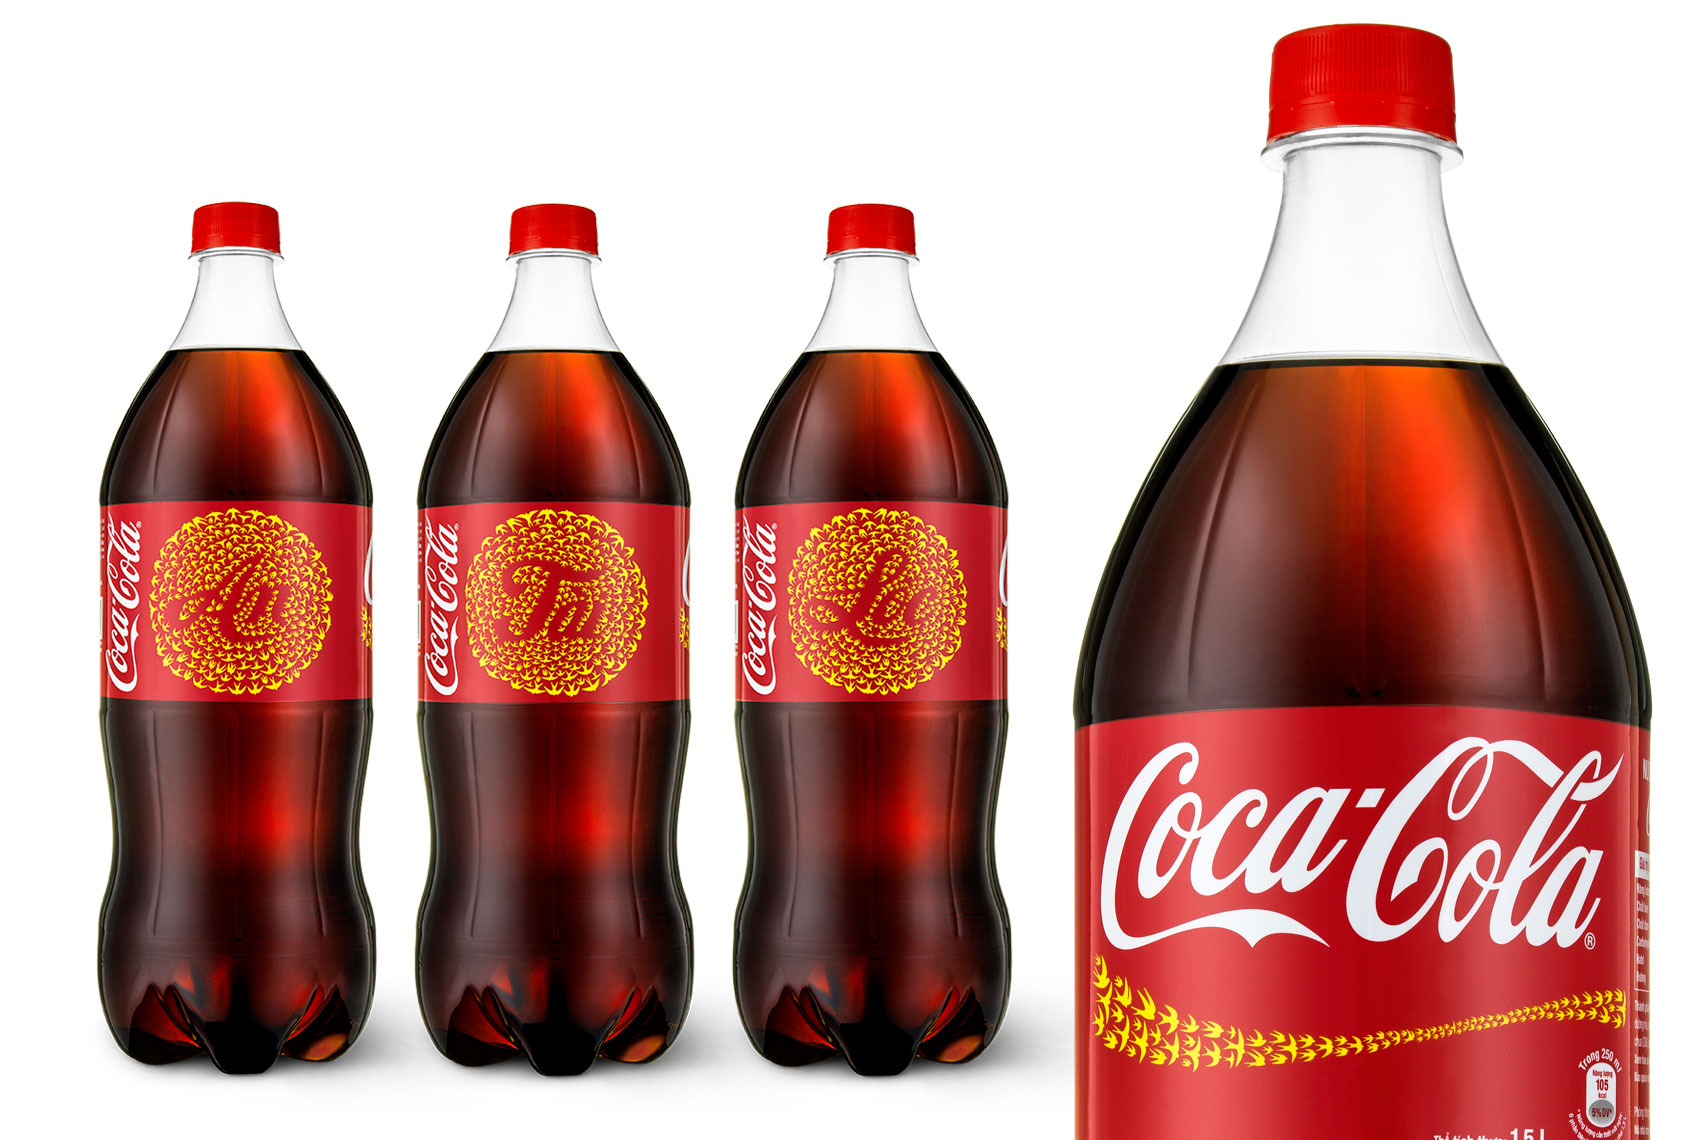 P039_product_shot_coca_cola_bottle_tet.jpg